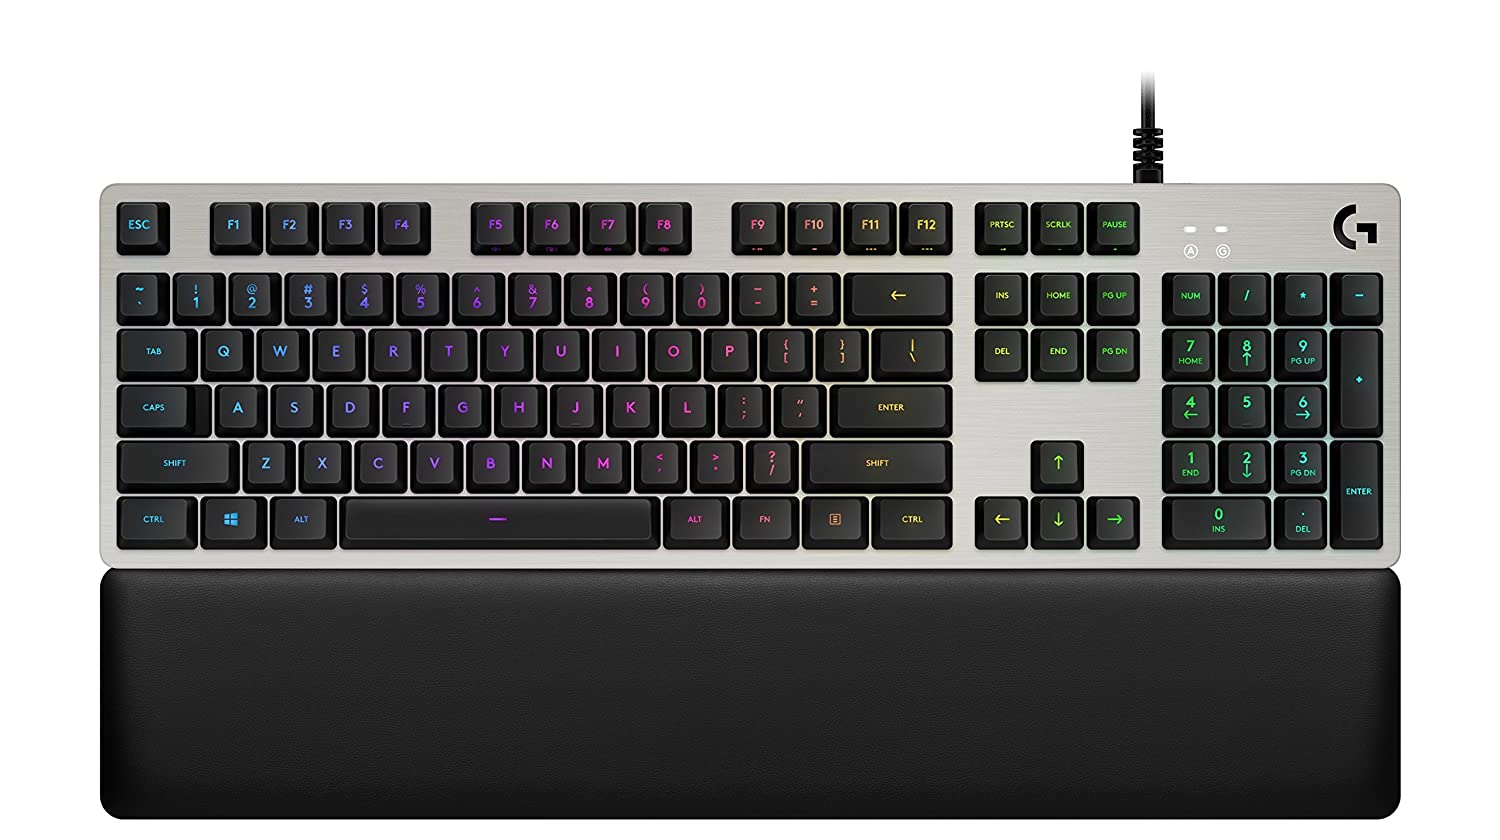 Logitech G513 RGB Backlit Mechanical Gaming Keyboard with Romer-G Linear Keyswitches, Carbon (920-008848)